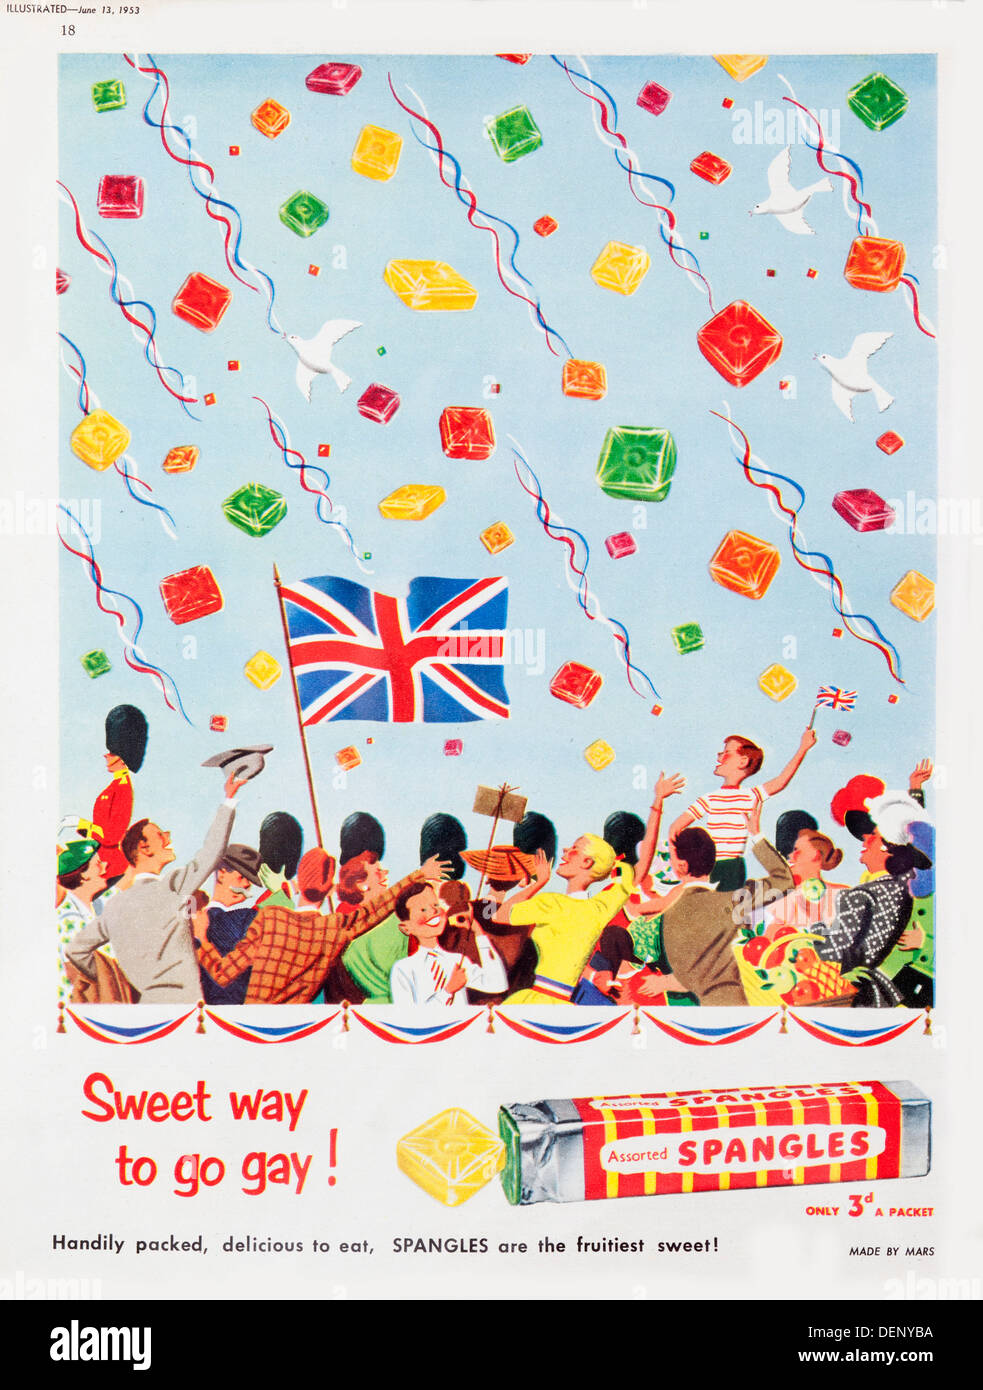 1953 advert for Spangles sweets - Stock Image